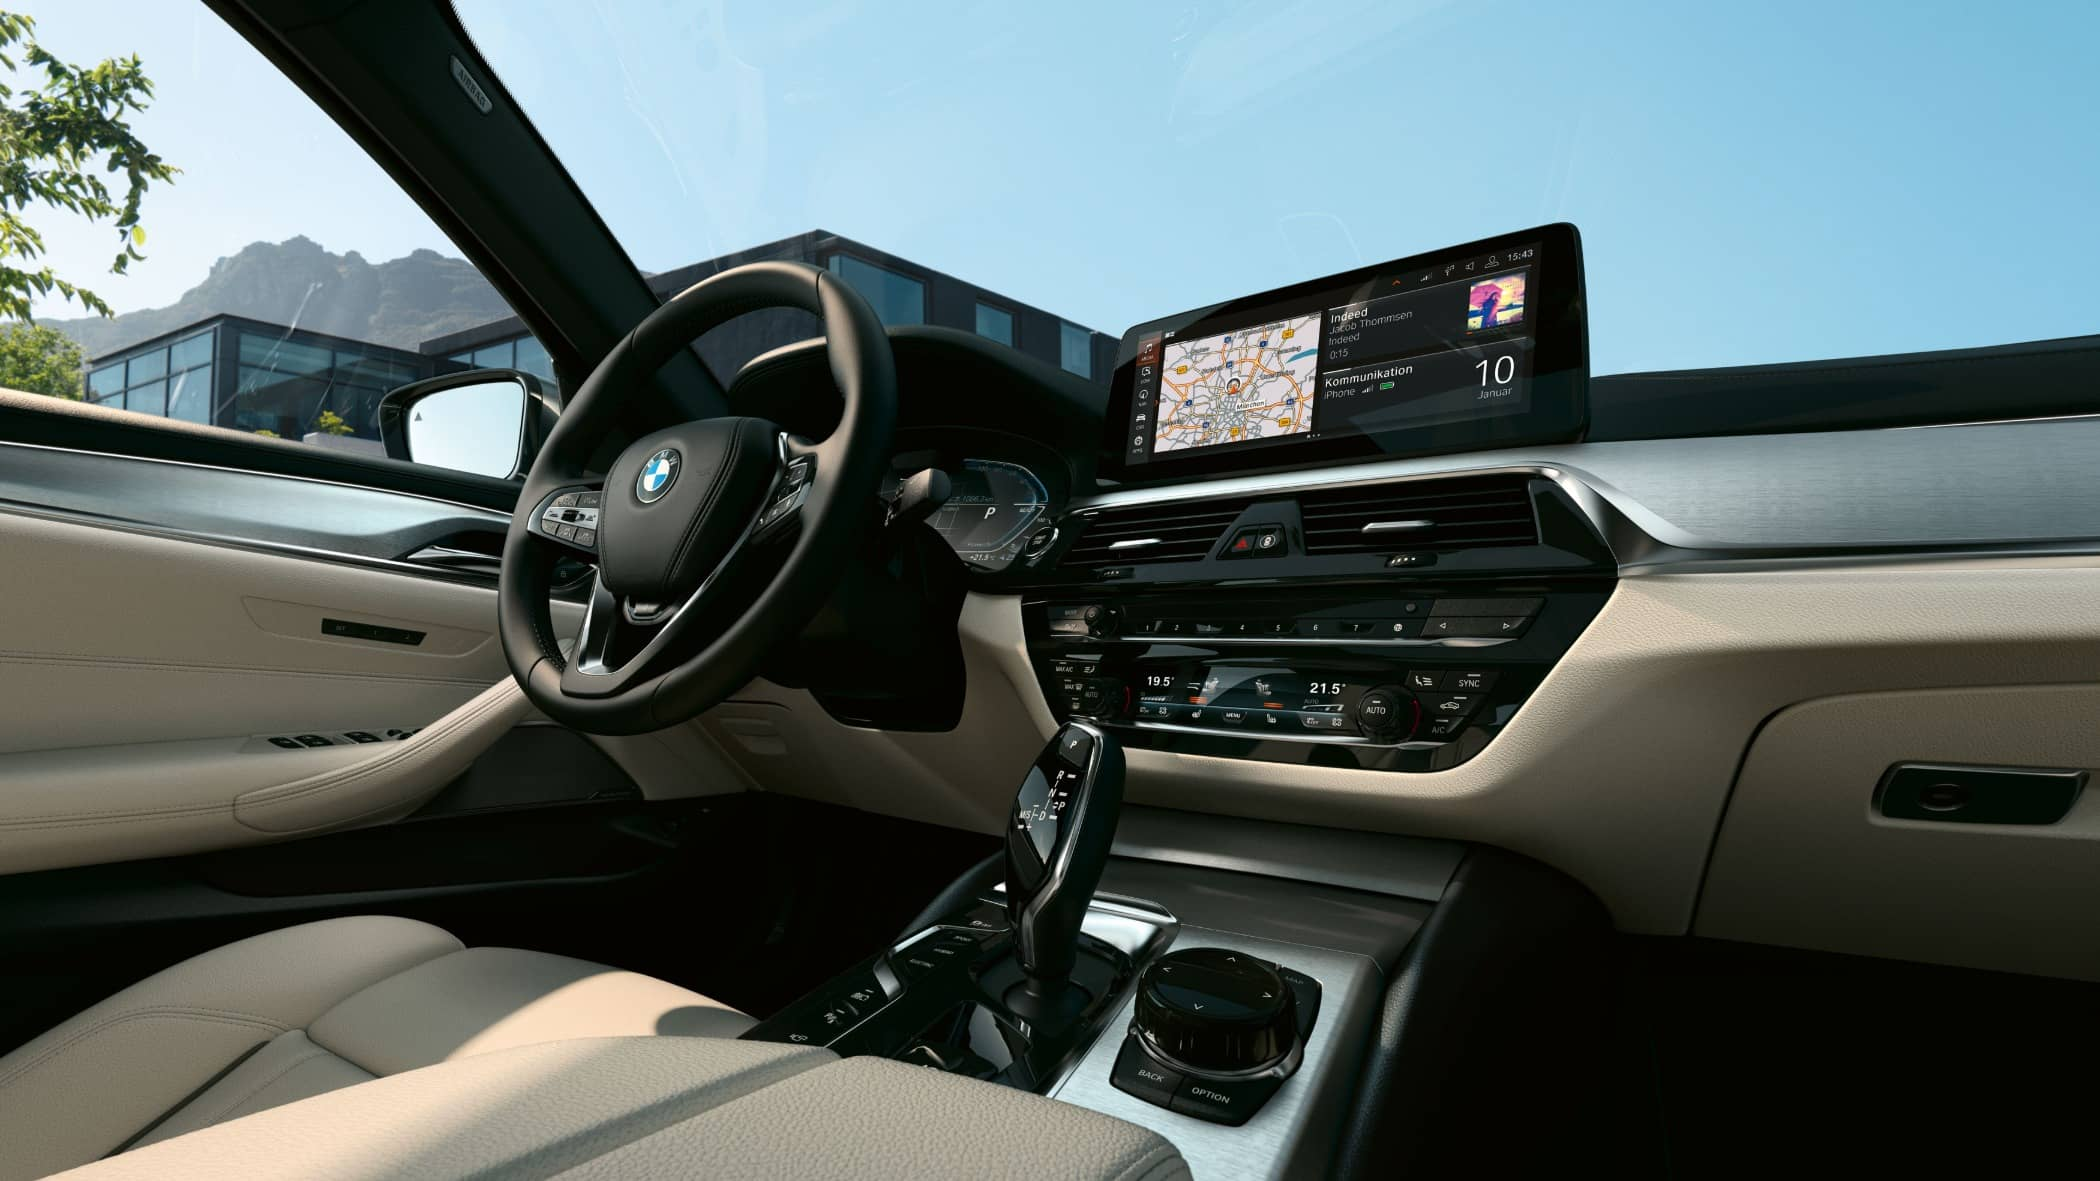 Personal luxury car, Steering wheel, Motor vehicle, Center console, Bmw